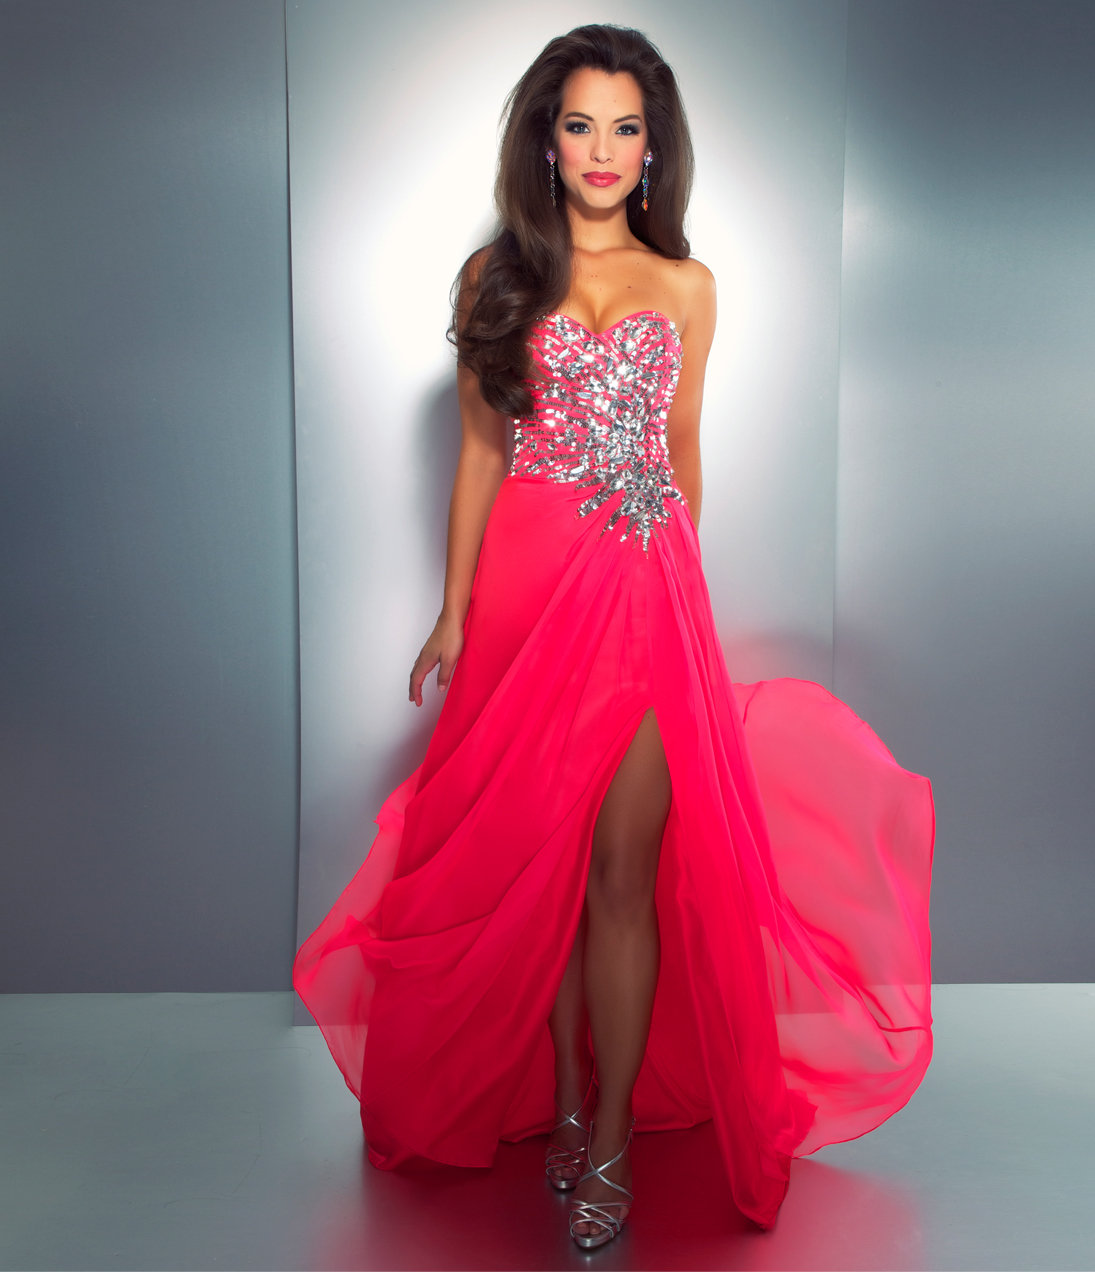 Related Keywords & Suggestions for Neon Pink Prom Dresses 2014